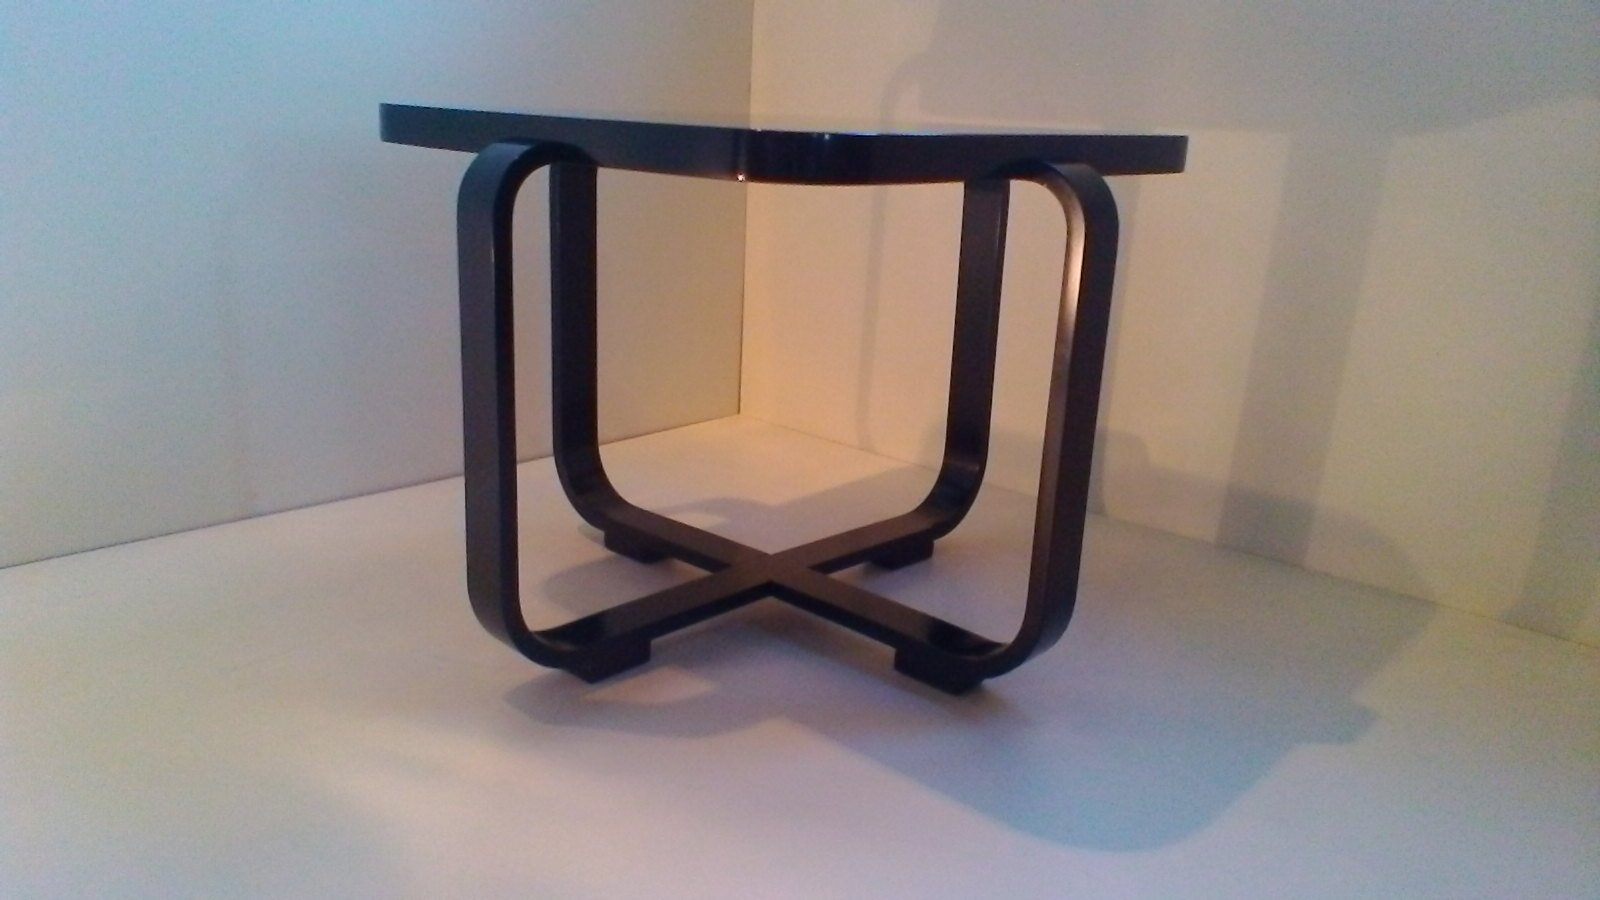 Art deco rectangular bentwood coffee table by jindich halabala art deco rectangular bentwood coffee table by jindich halabala geotapseo Gallery